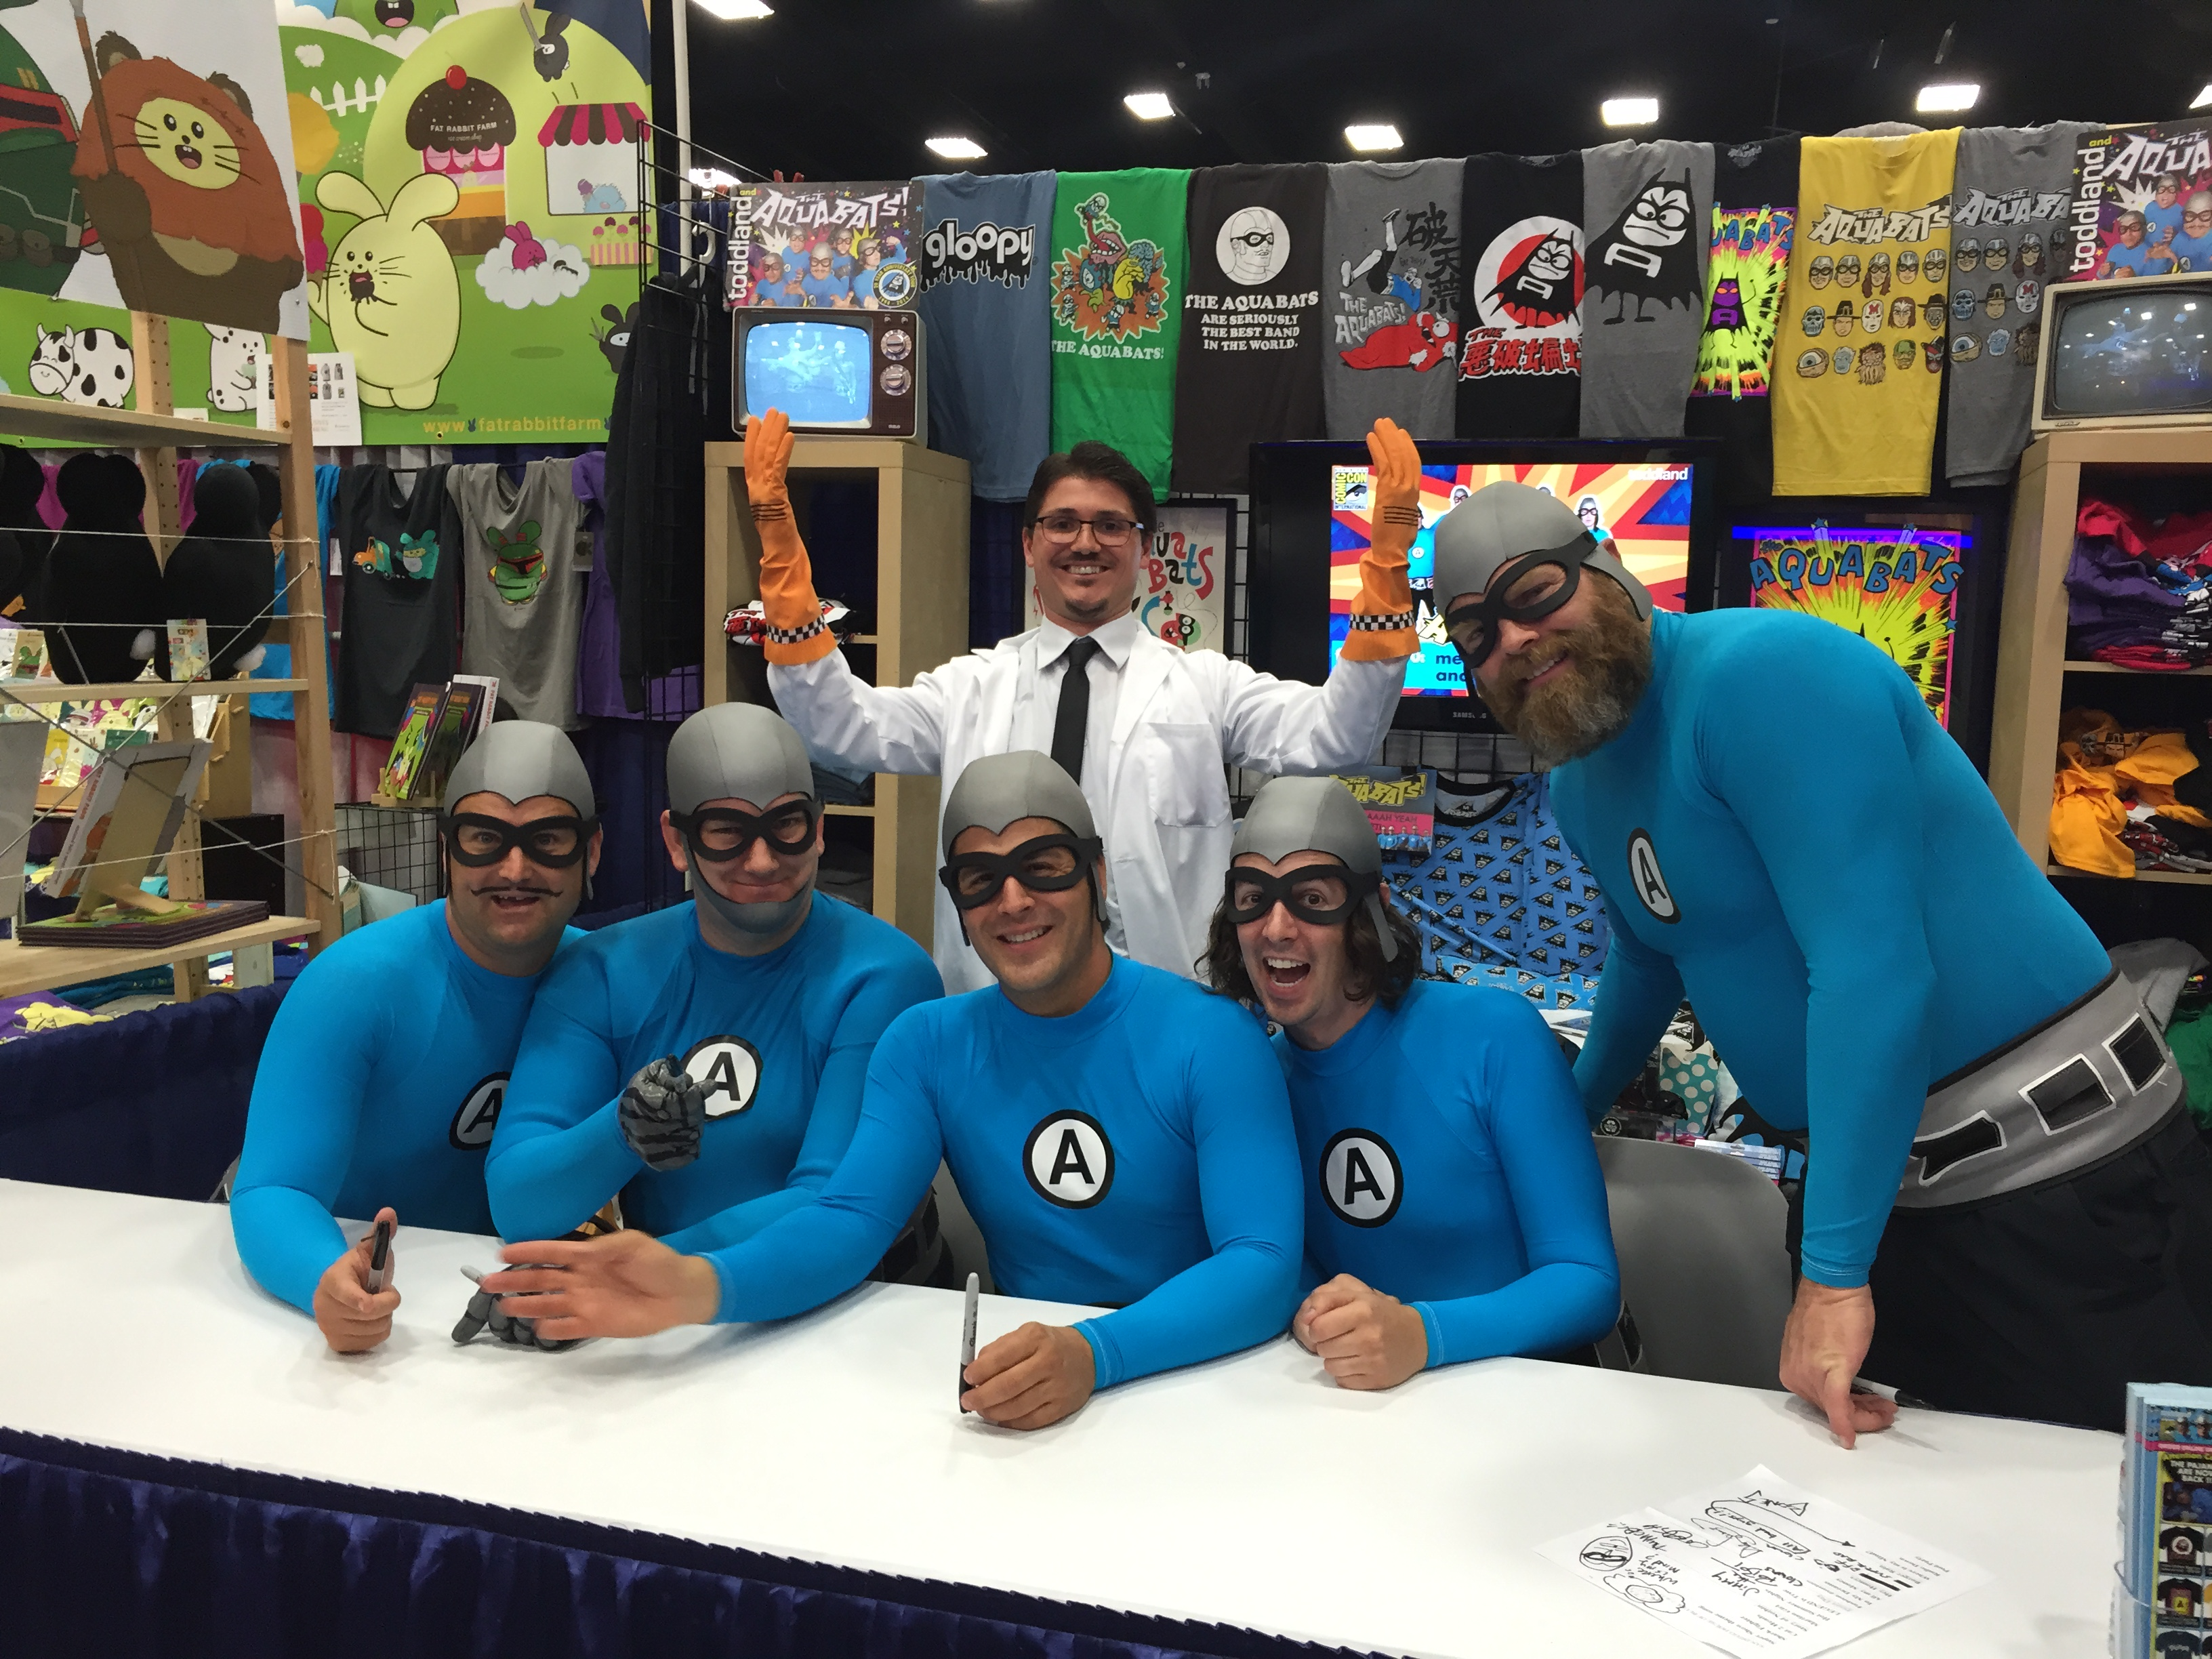 Professor Monty Corndog of the Aquabats